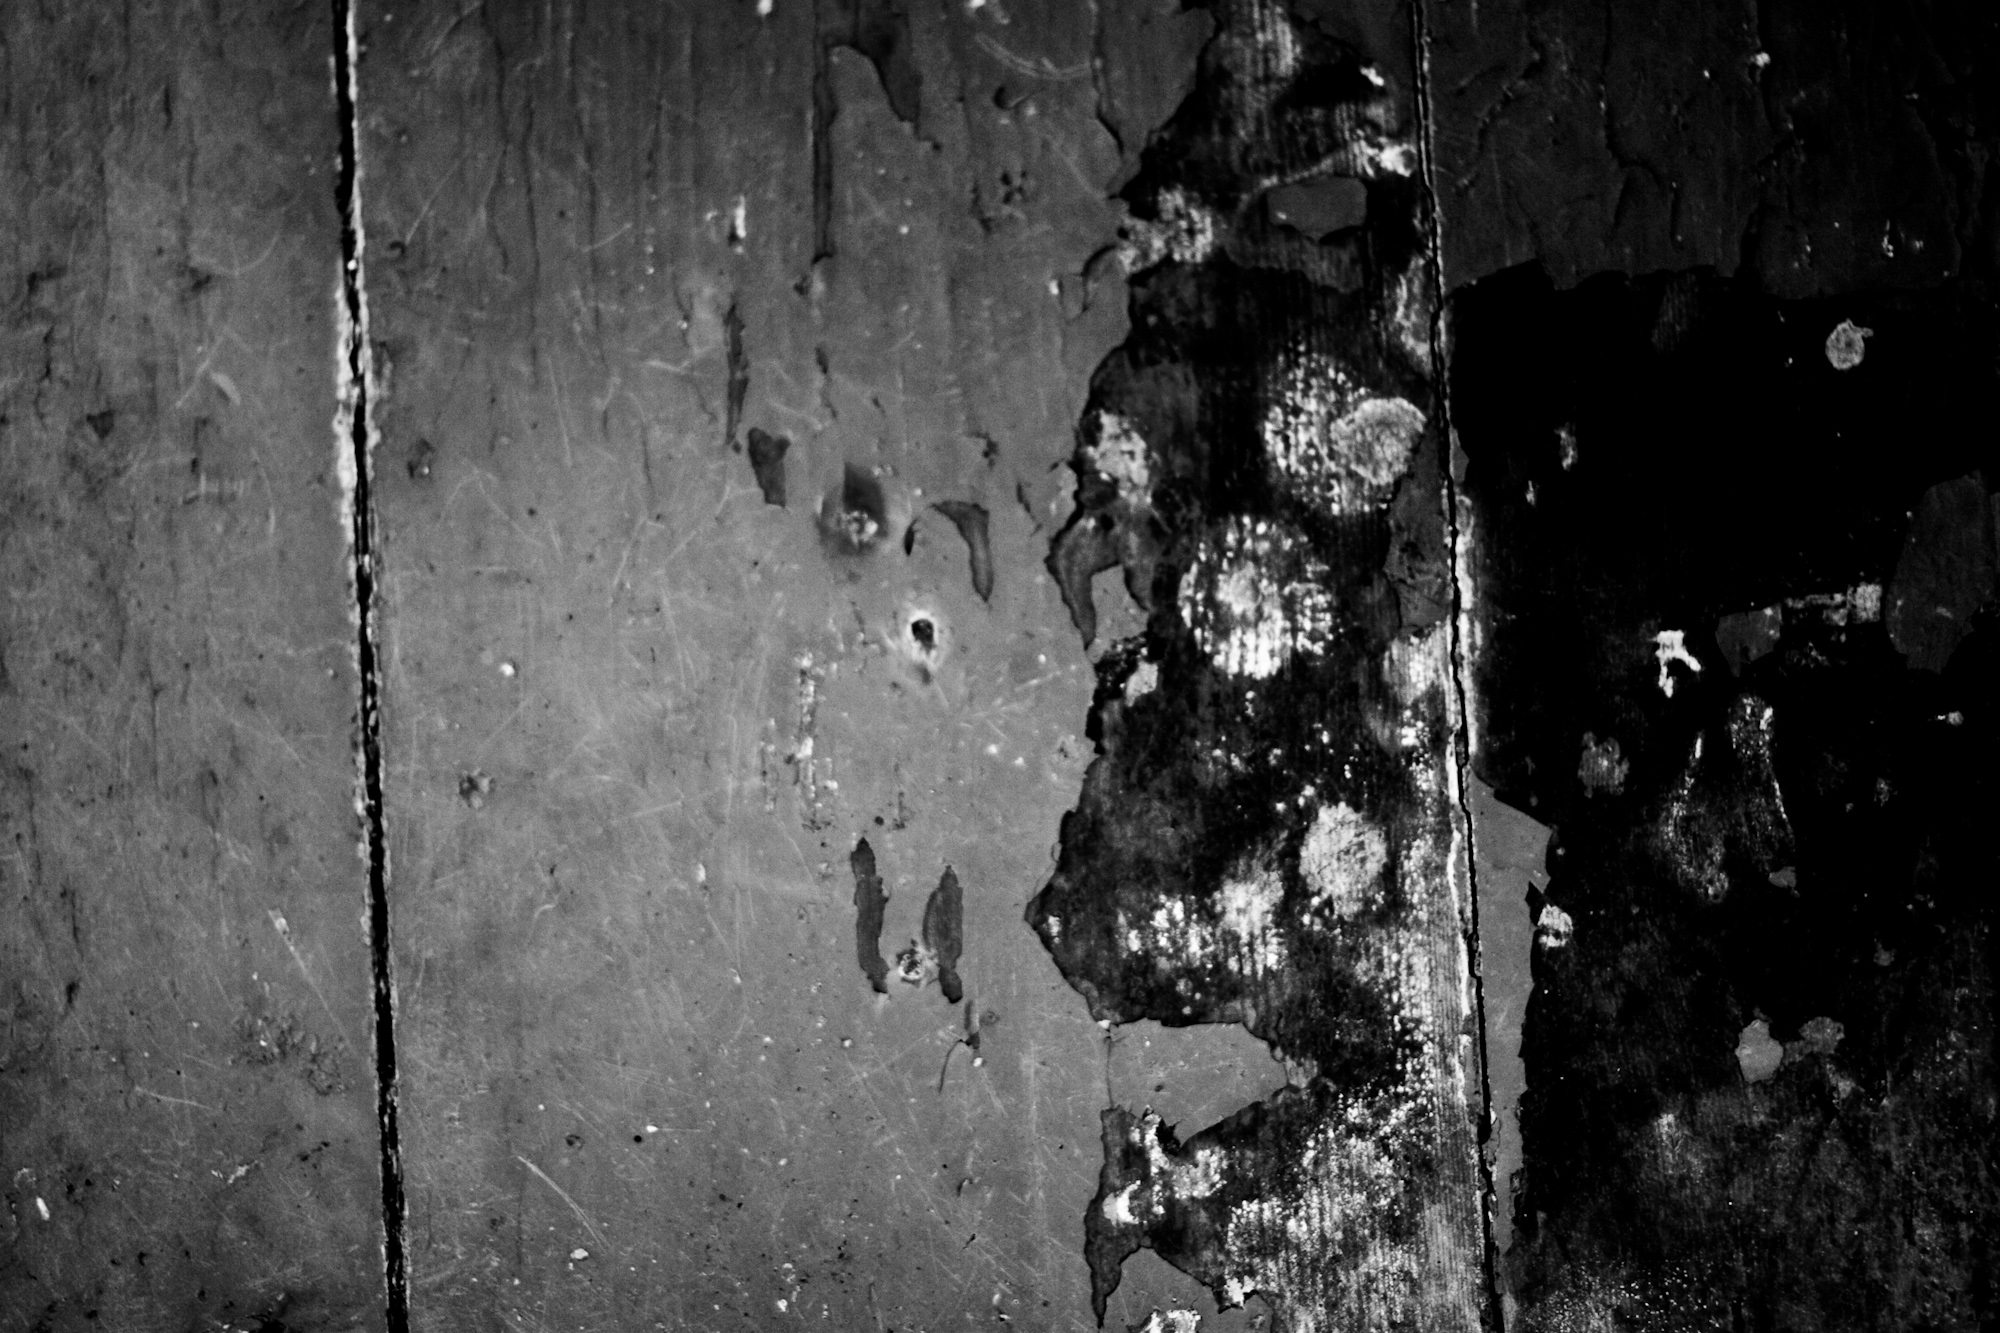 Dark Stained Wall, Dark, Gloomy, Grunge, Grungy, HQ Photo